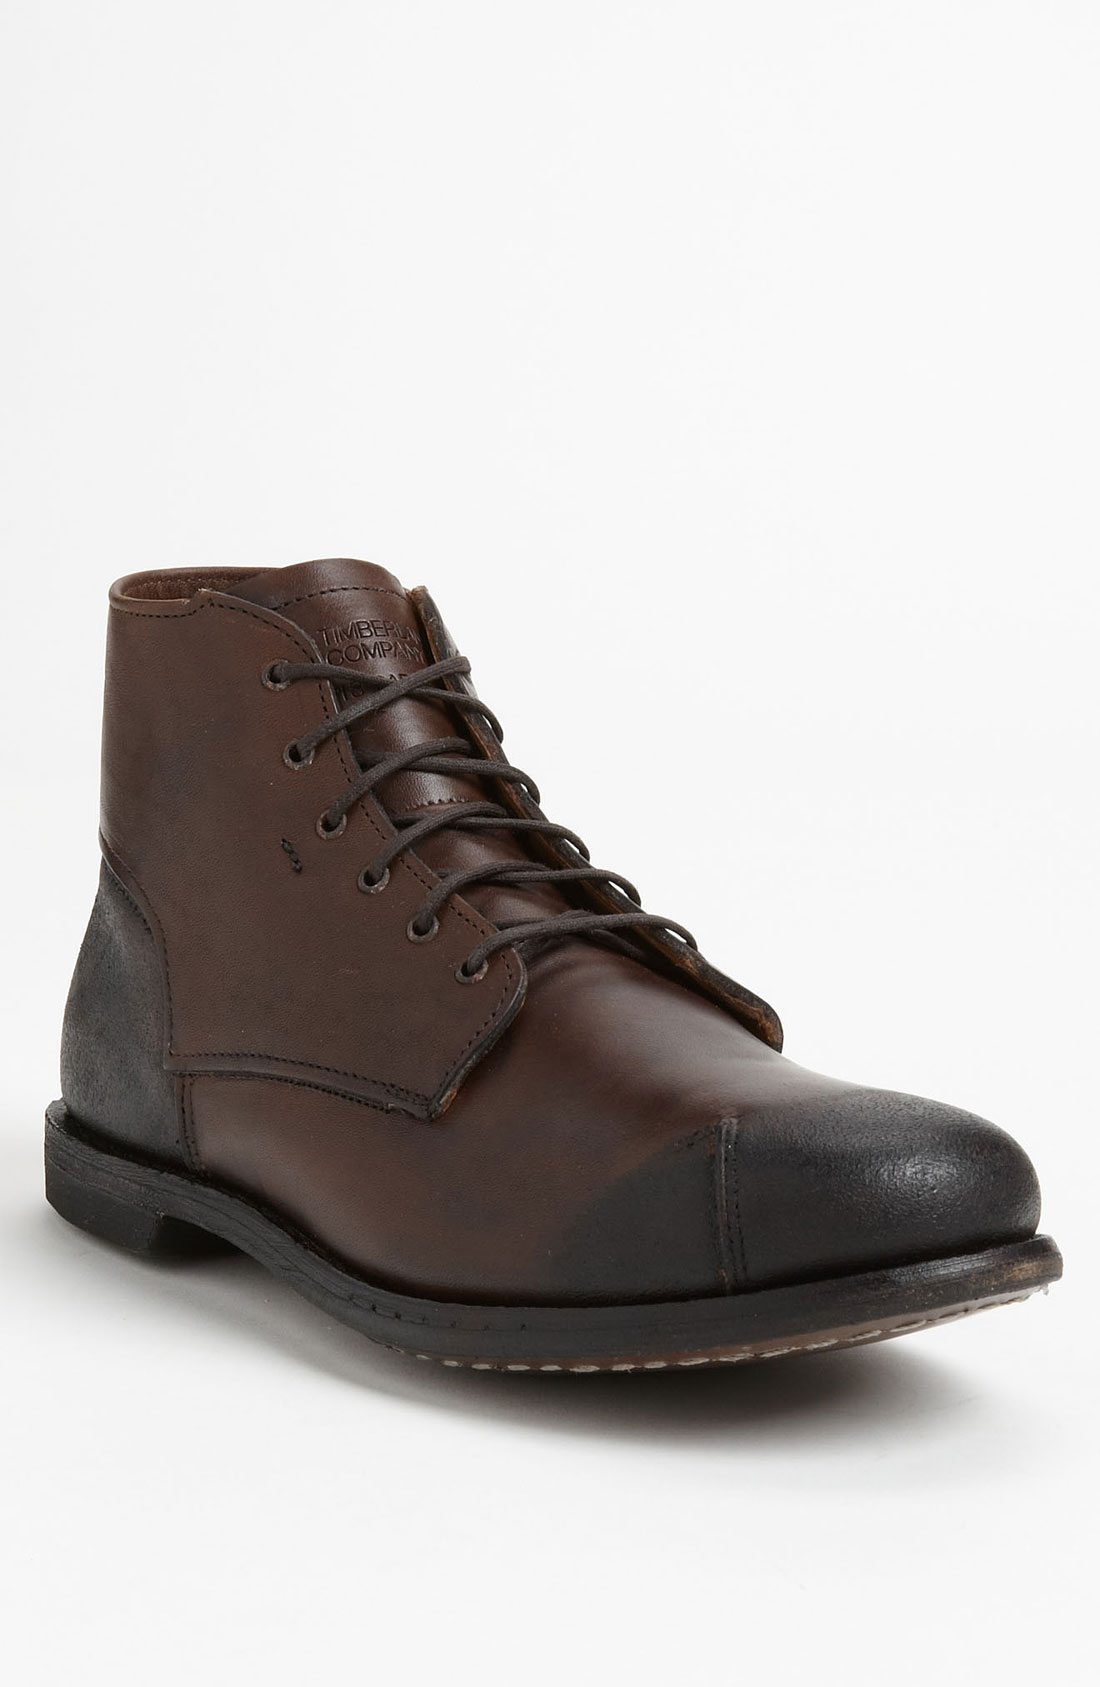 timberland boot company 13 carries plain toe boot in brown